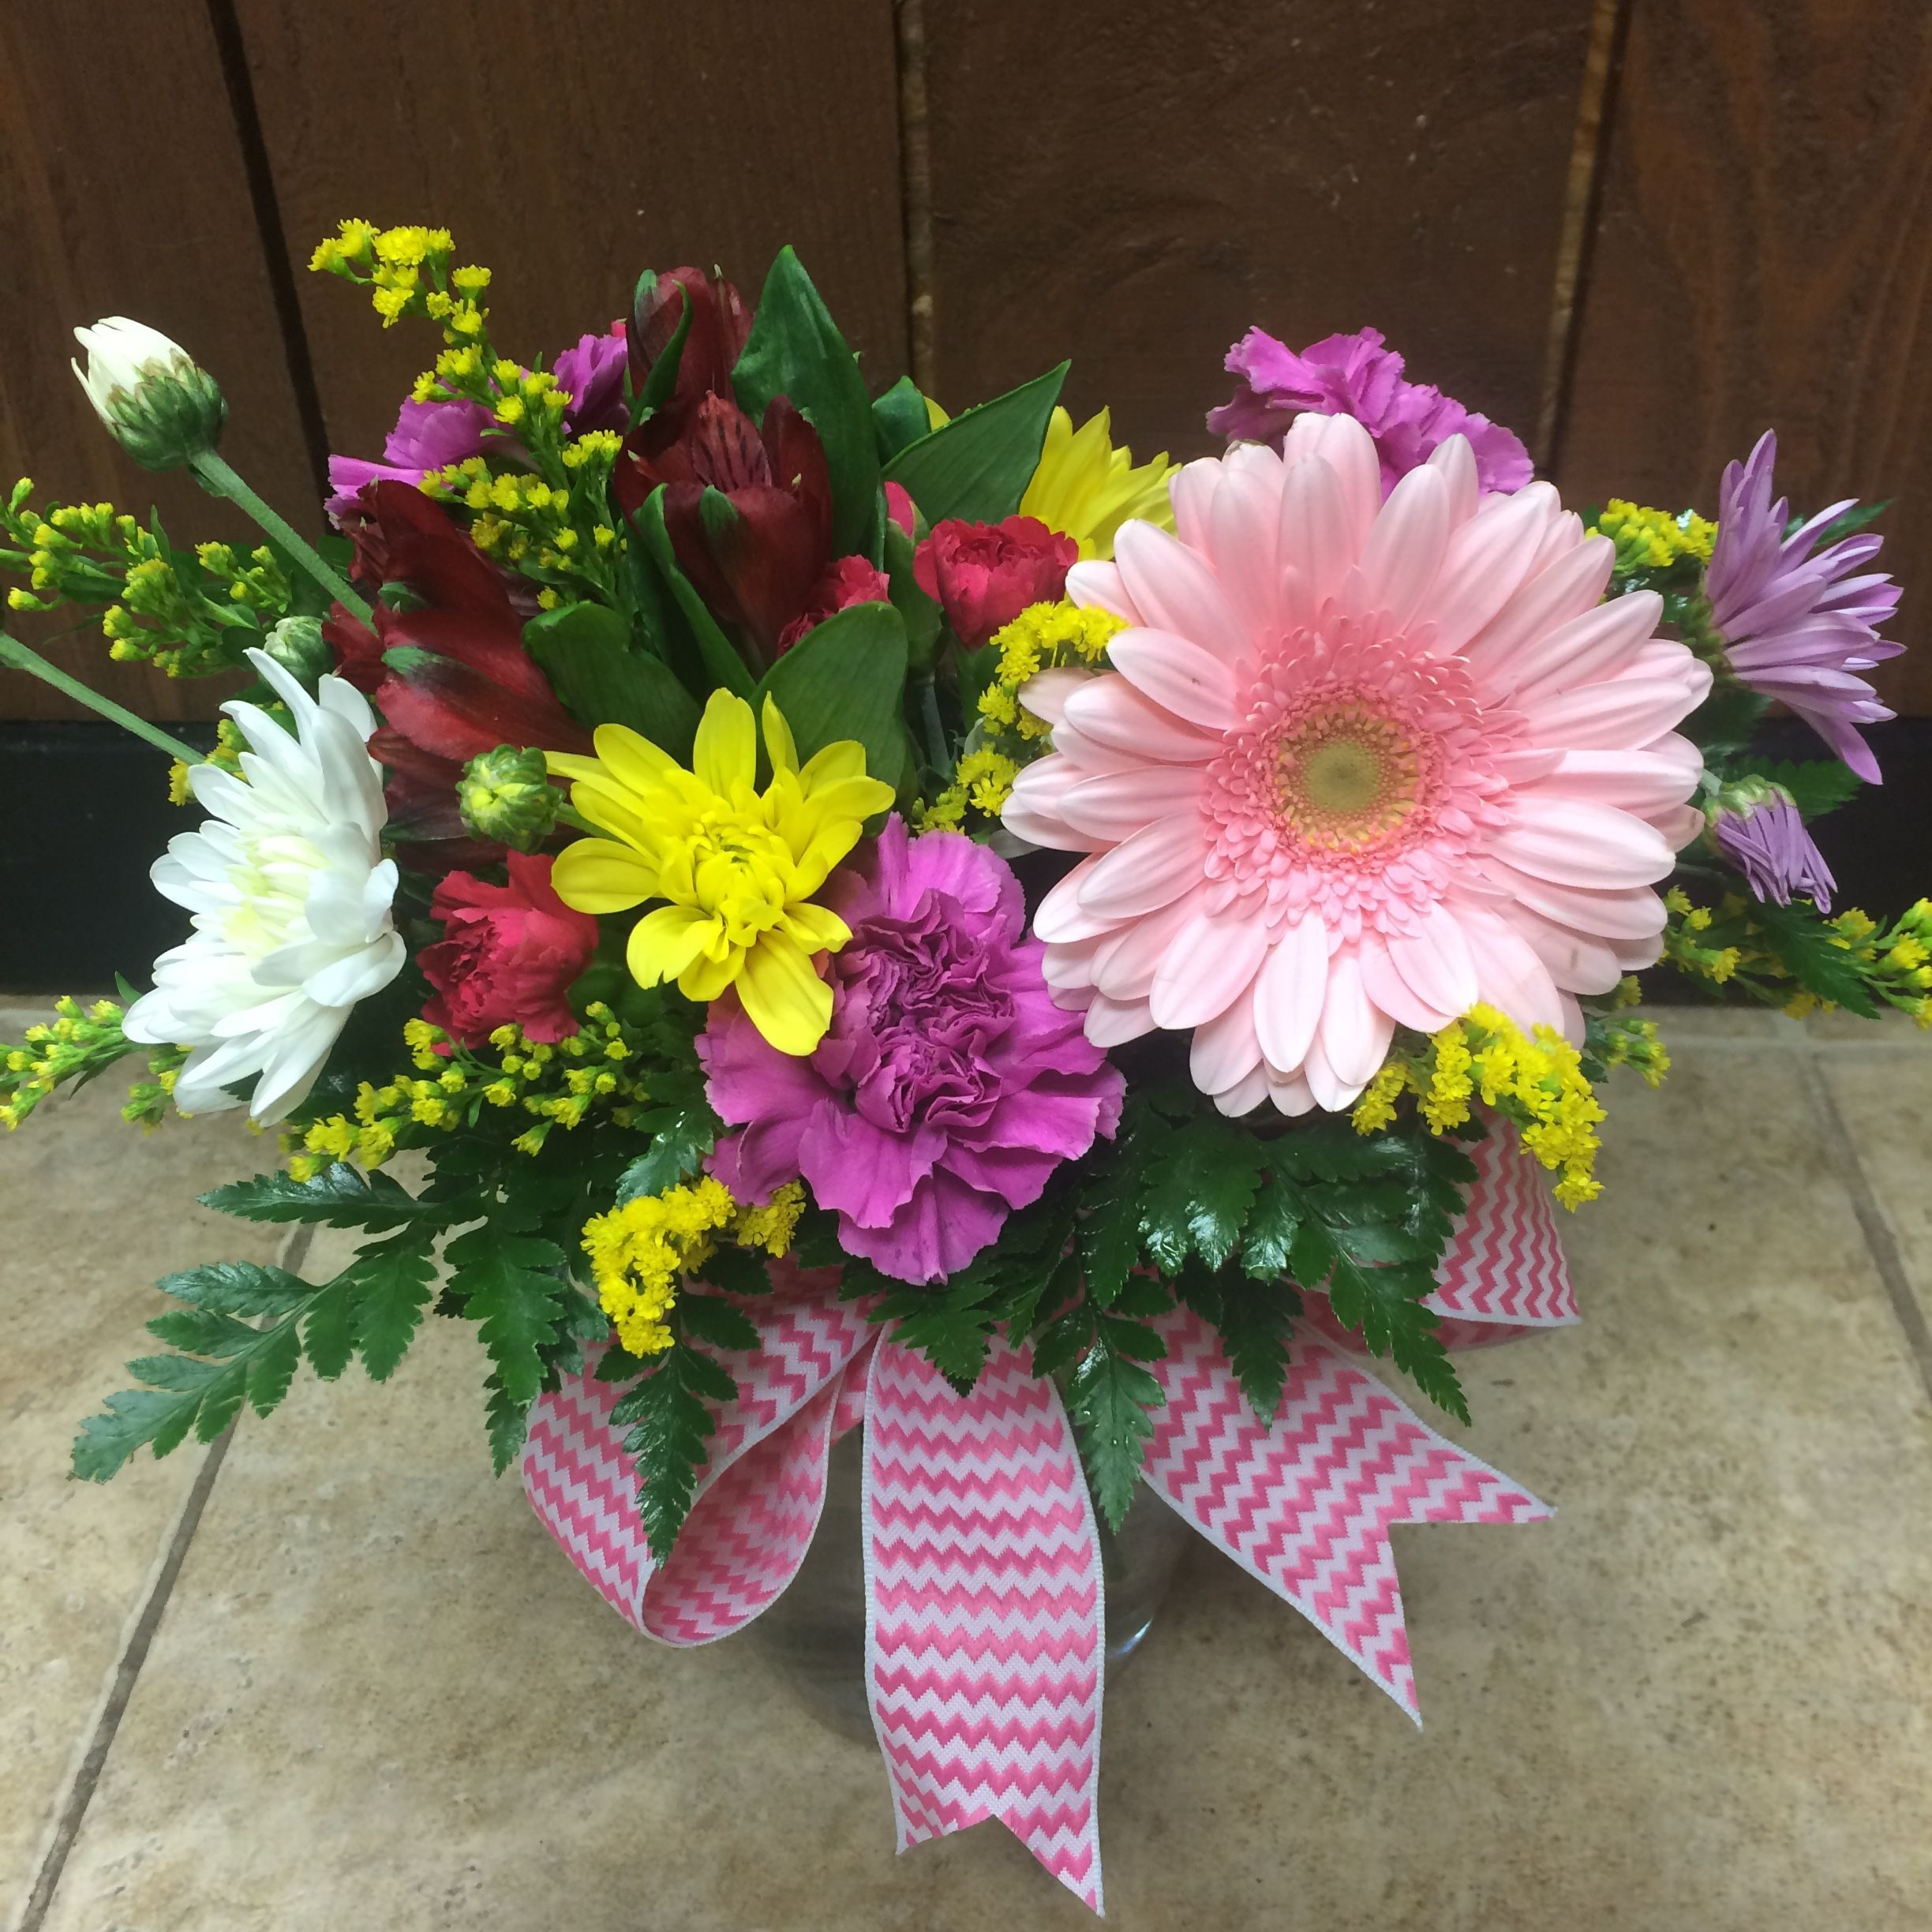 Lucky Lady Sunshine Designs Florist